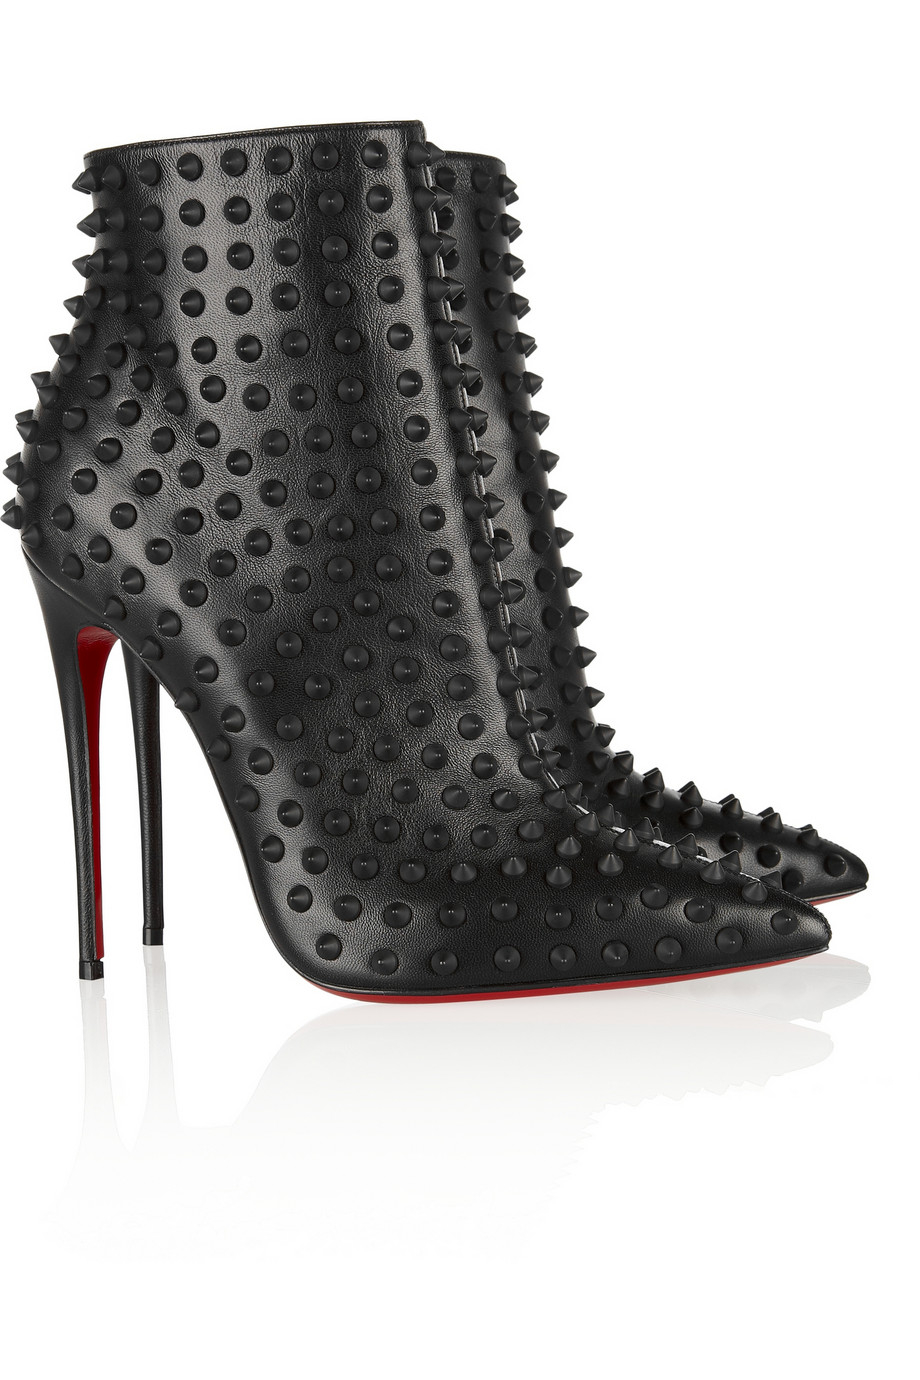 lyst christian louboutin snakilta 120 spiked leather. Black Bedroom Furniture Sets. Home Design Ideas